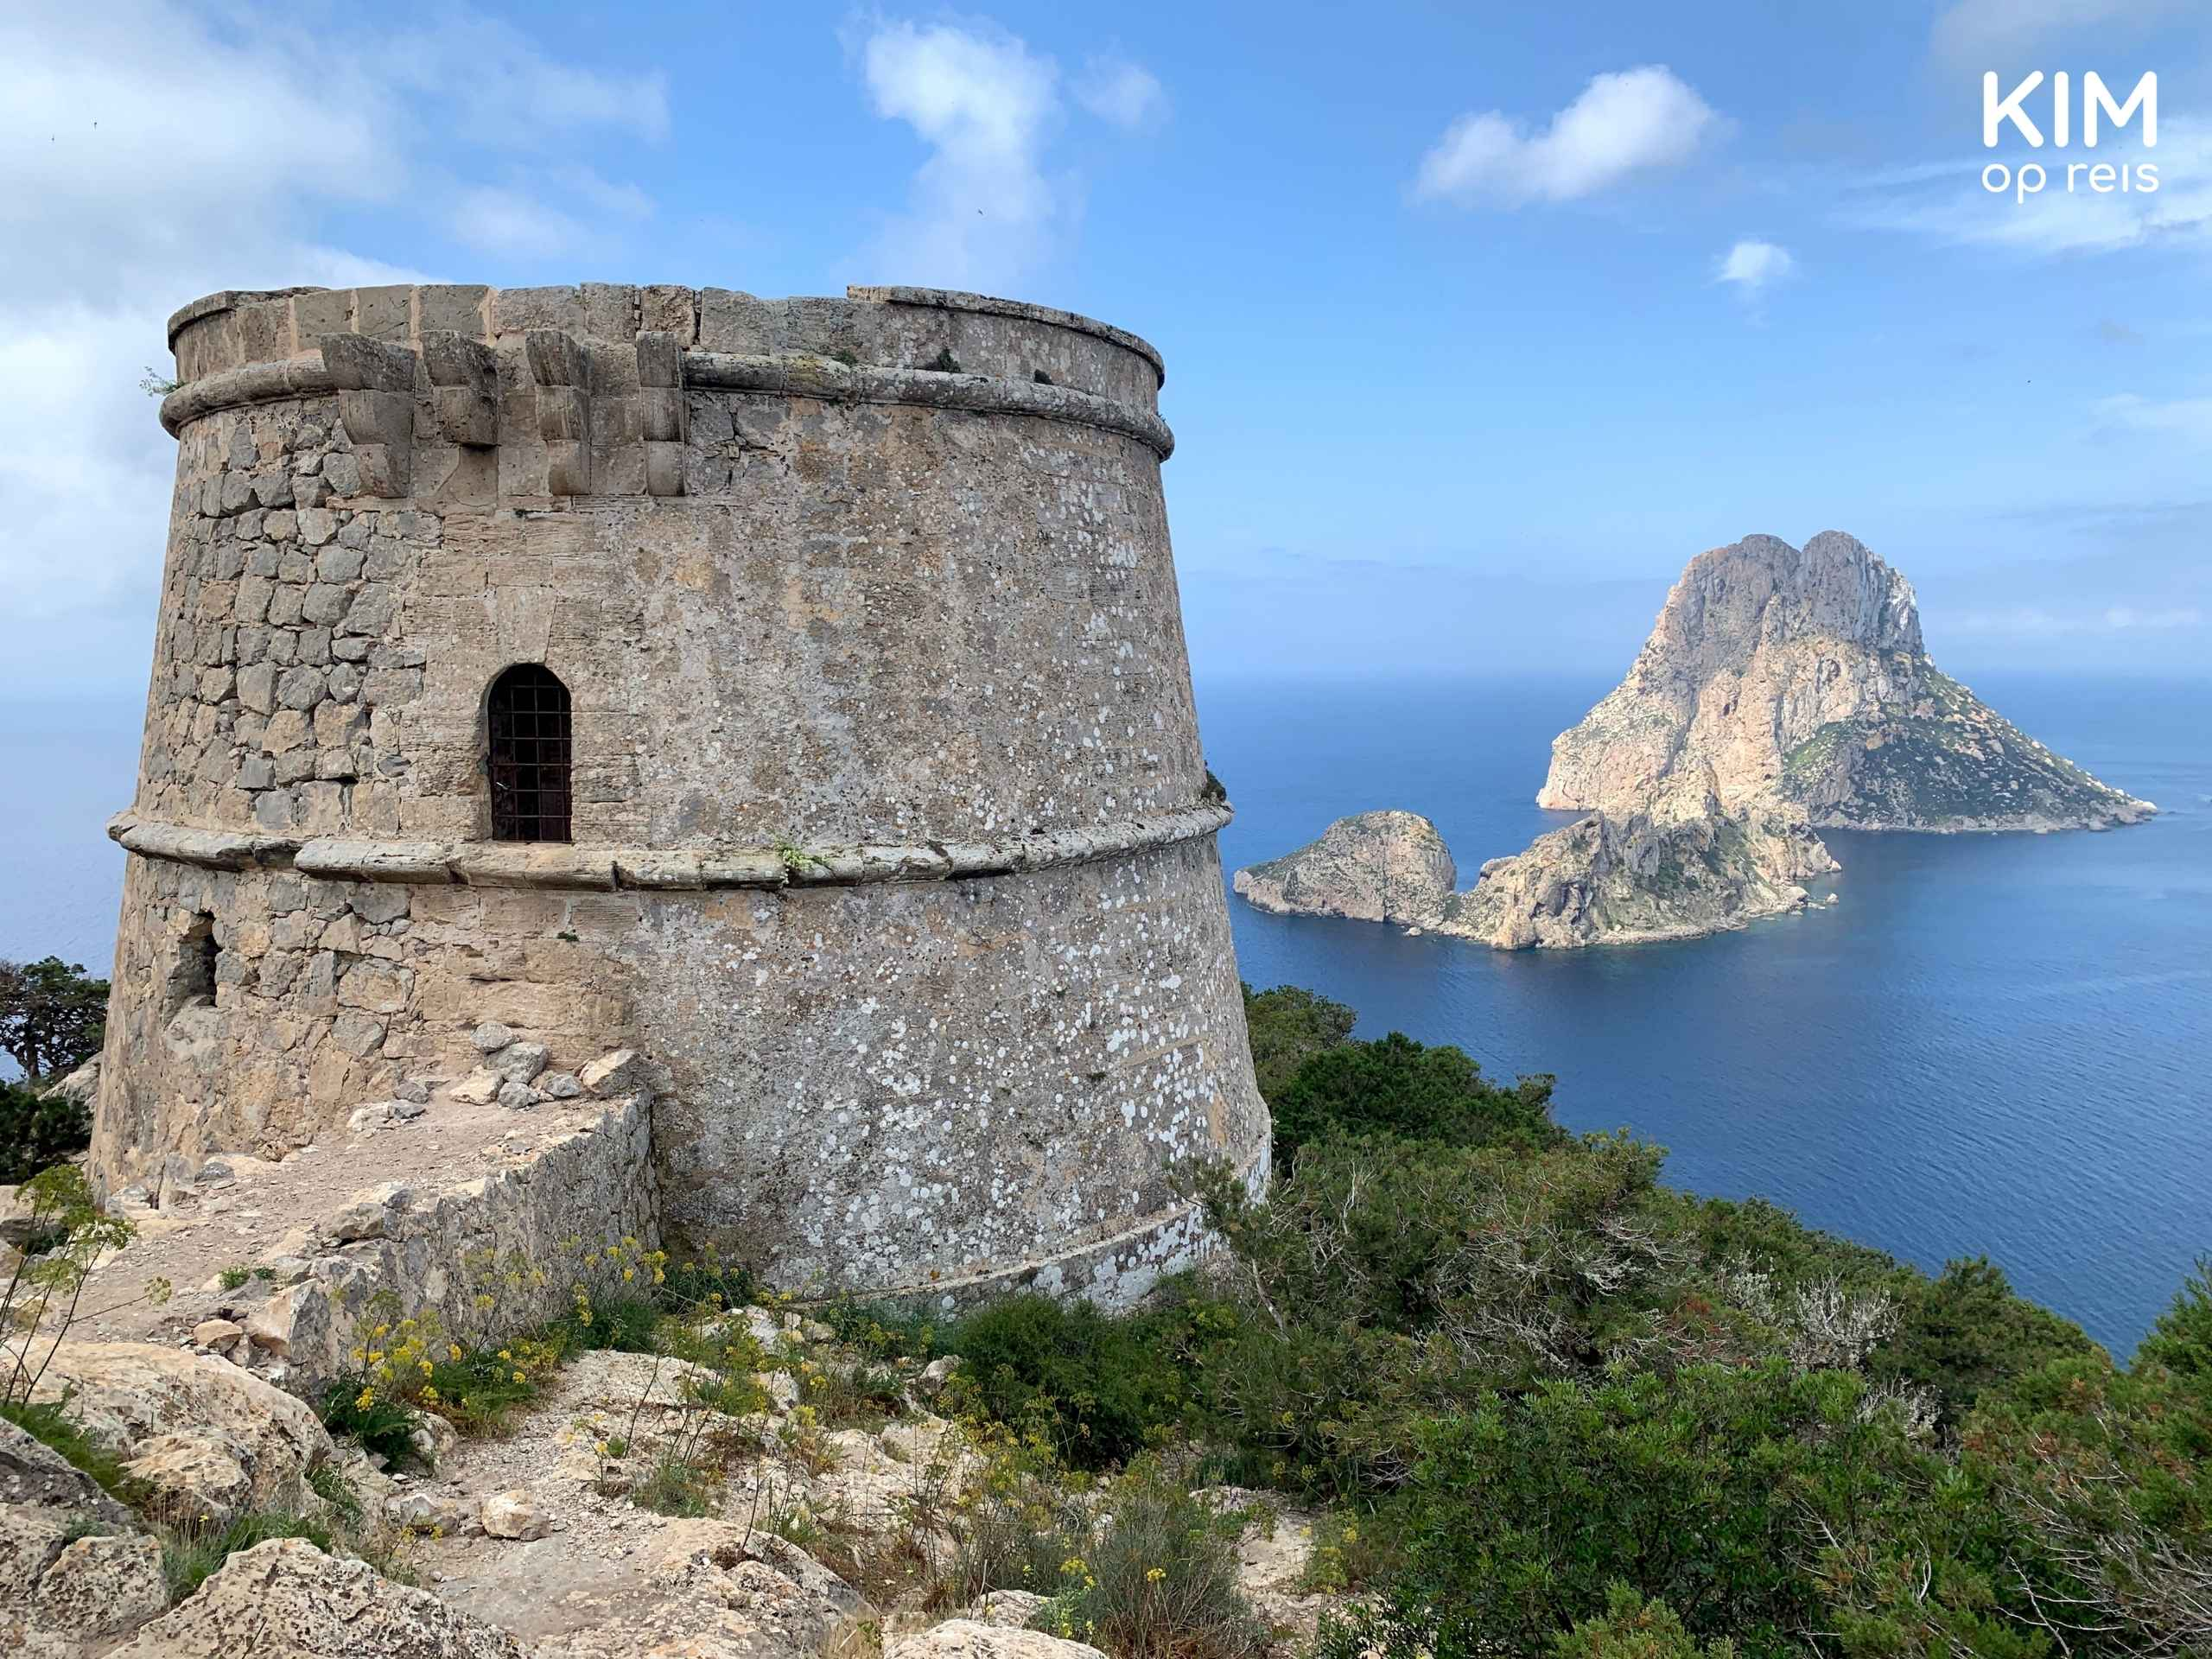 Torre de Pirata Ibiza: a round, low tower with the rock formation Es Vedra . in the background